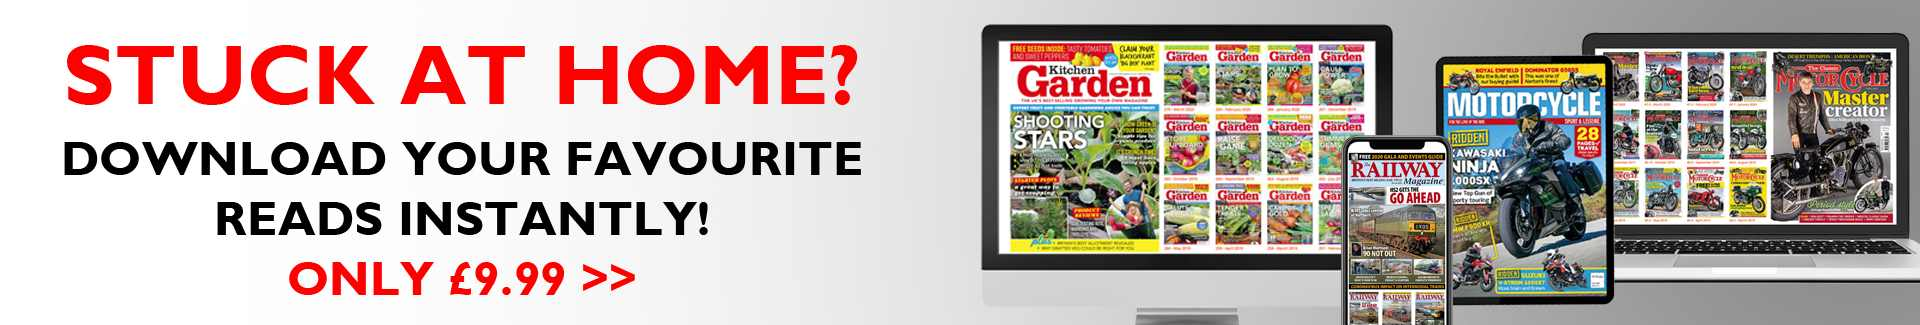 Digital subscriptions for only £9.99!